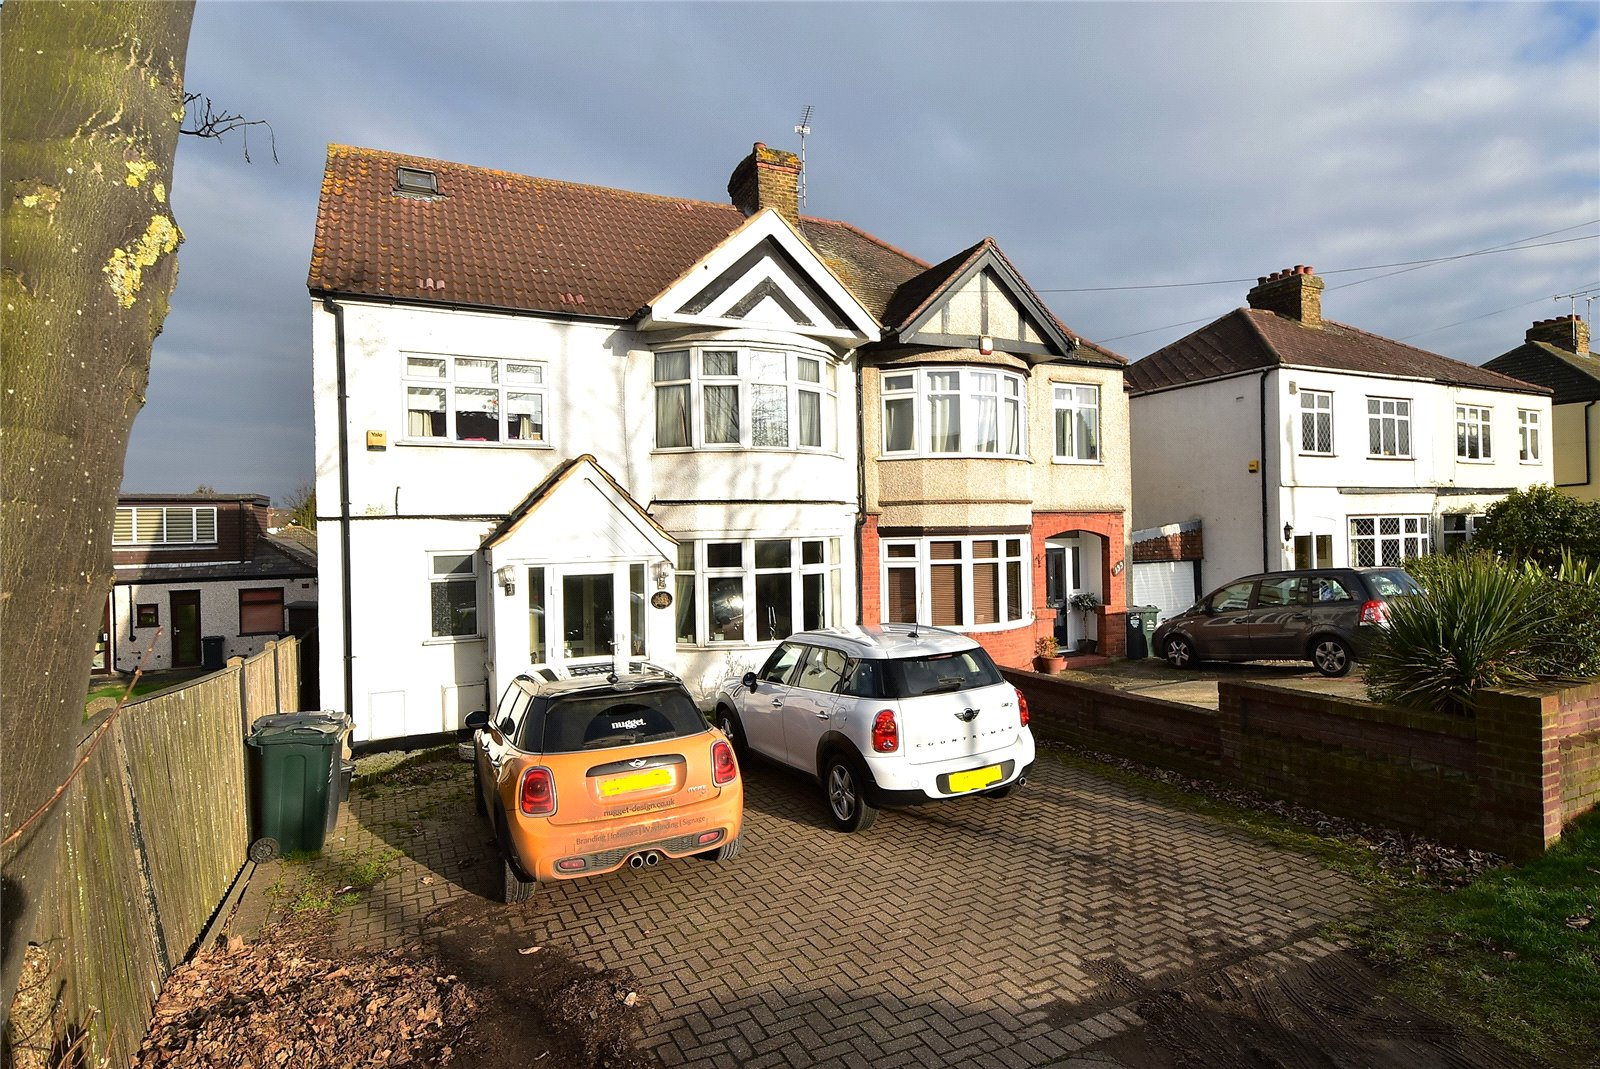 Princes Road, West Dartford, Kent, DA1